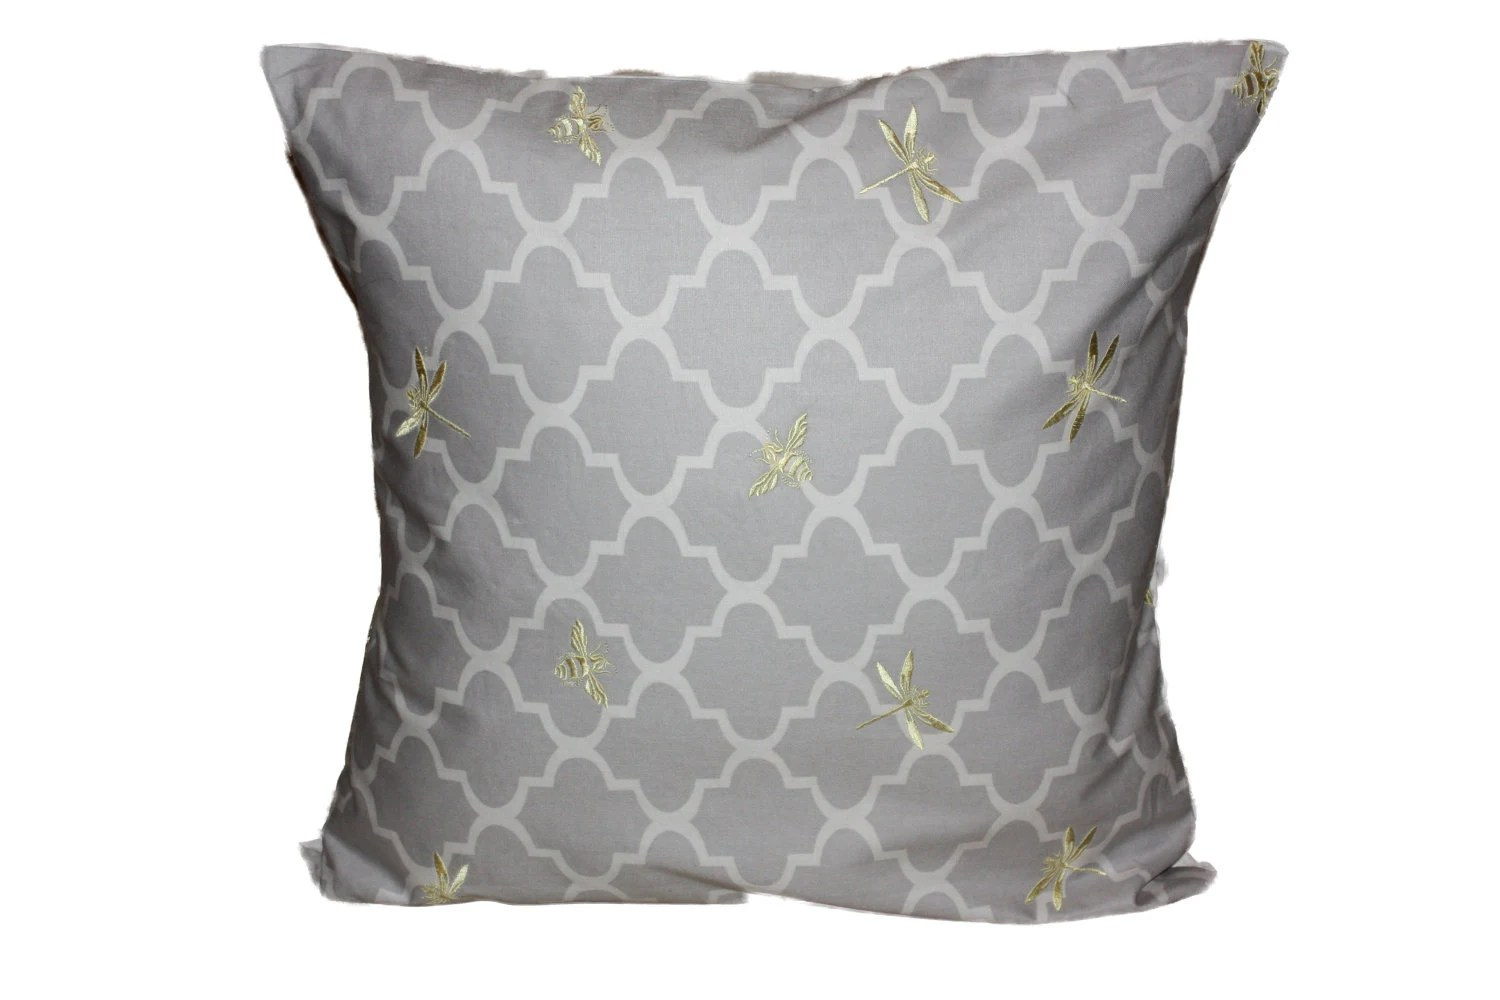 Decorative Cushion Pillow Cover  18 inch Embroidery, Gray, Yellow, Gold, Buzzing Dragonflies and Bumble Bees . Waverly